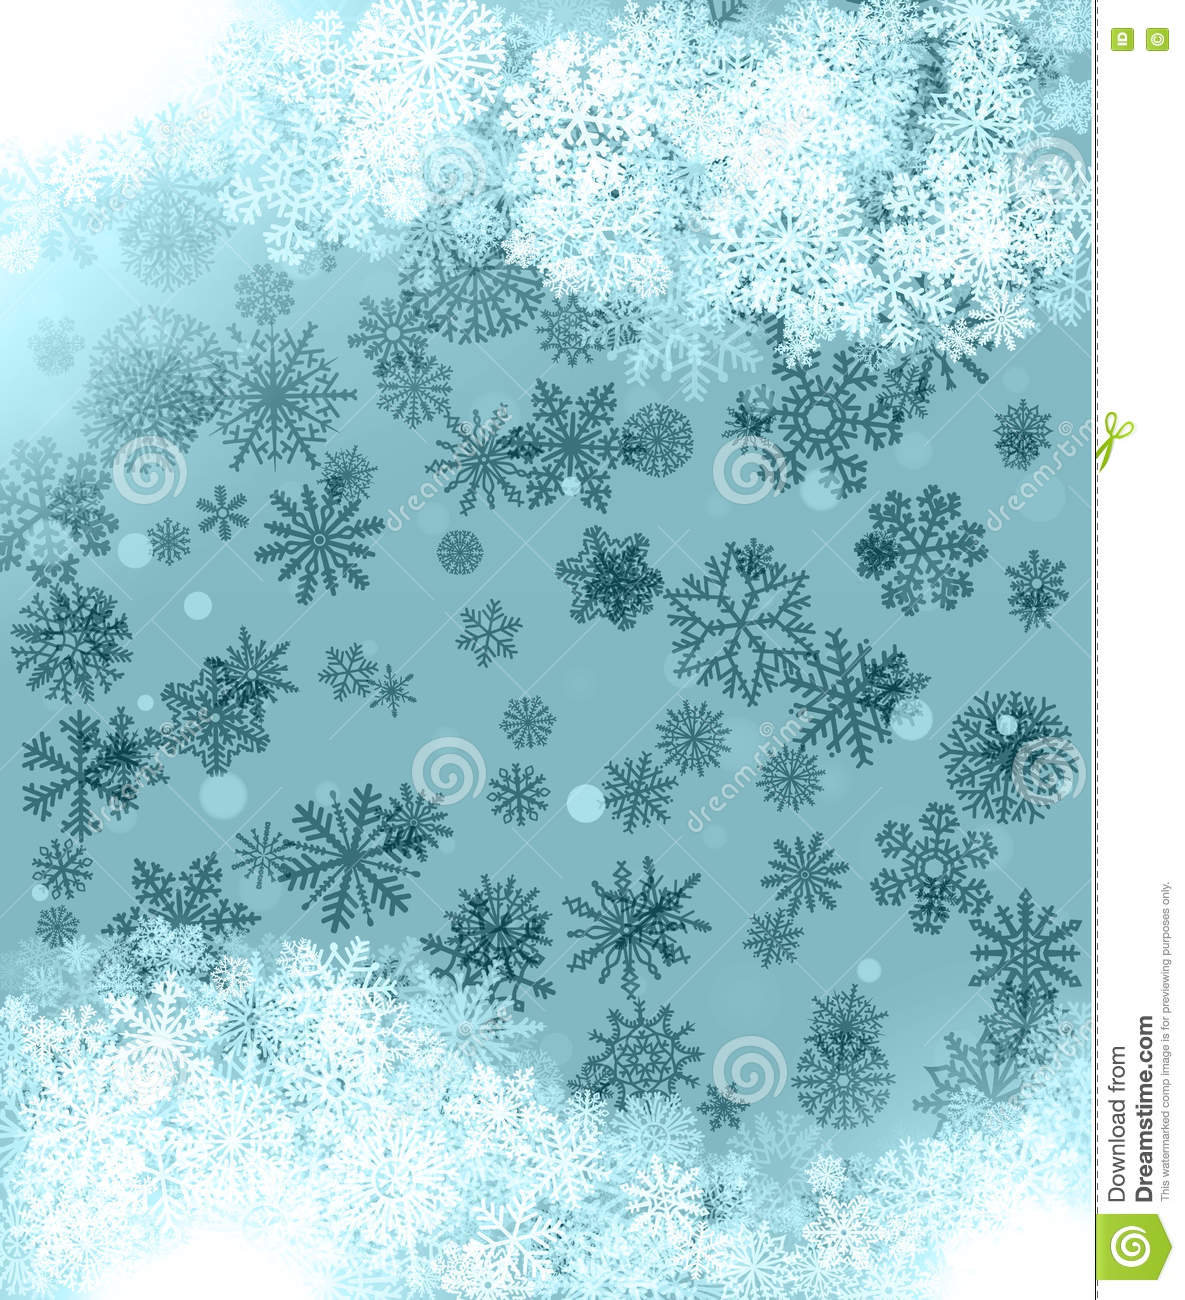 Background Green For Greeting Cards With Snowflakes And Abstract